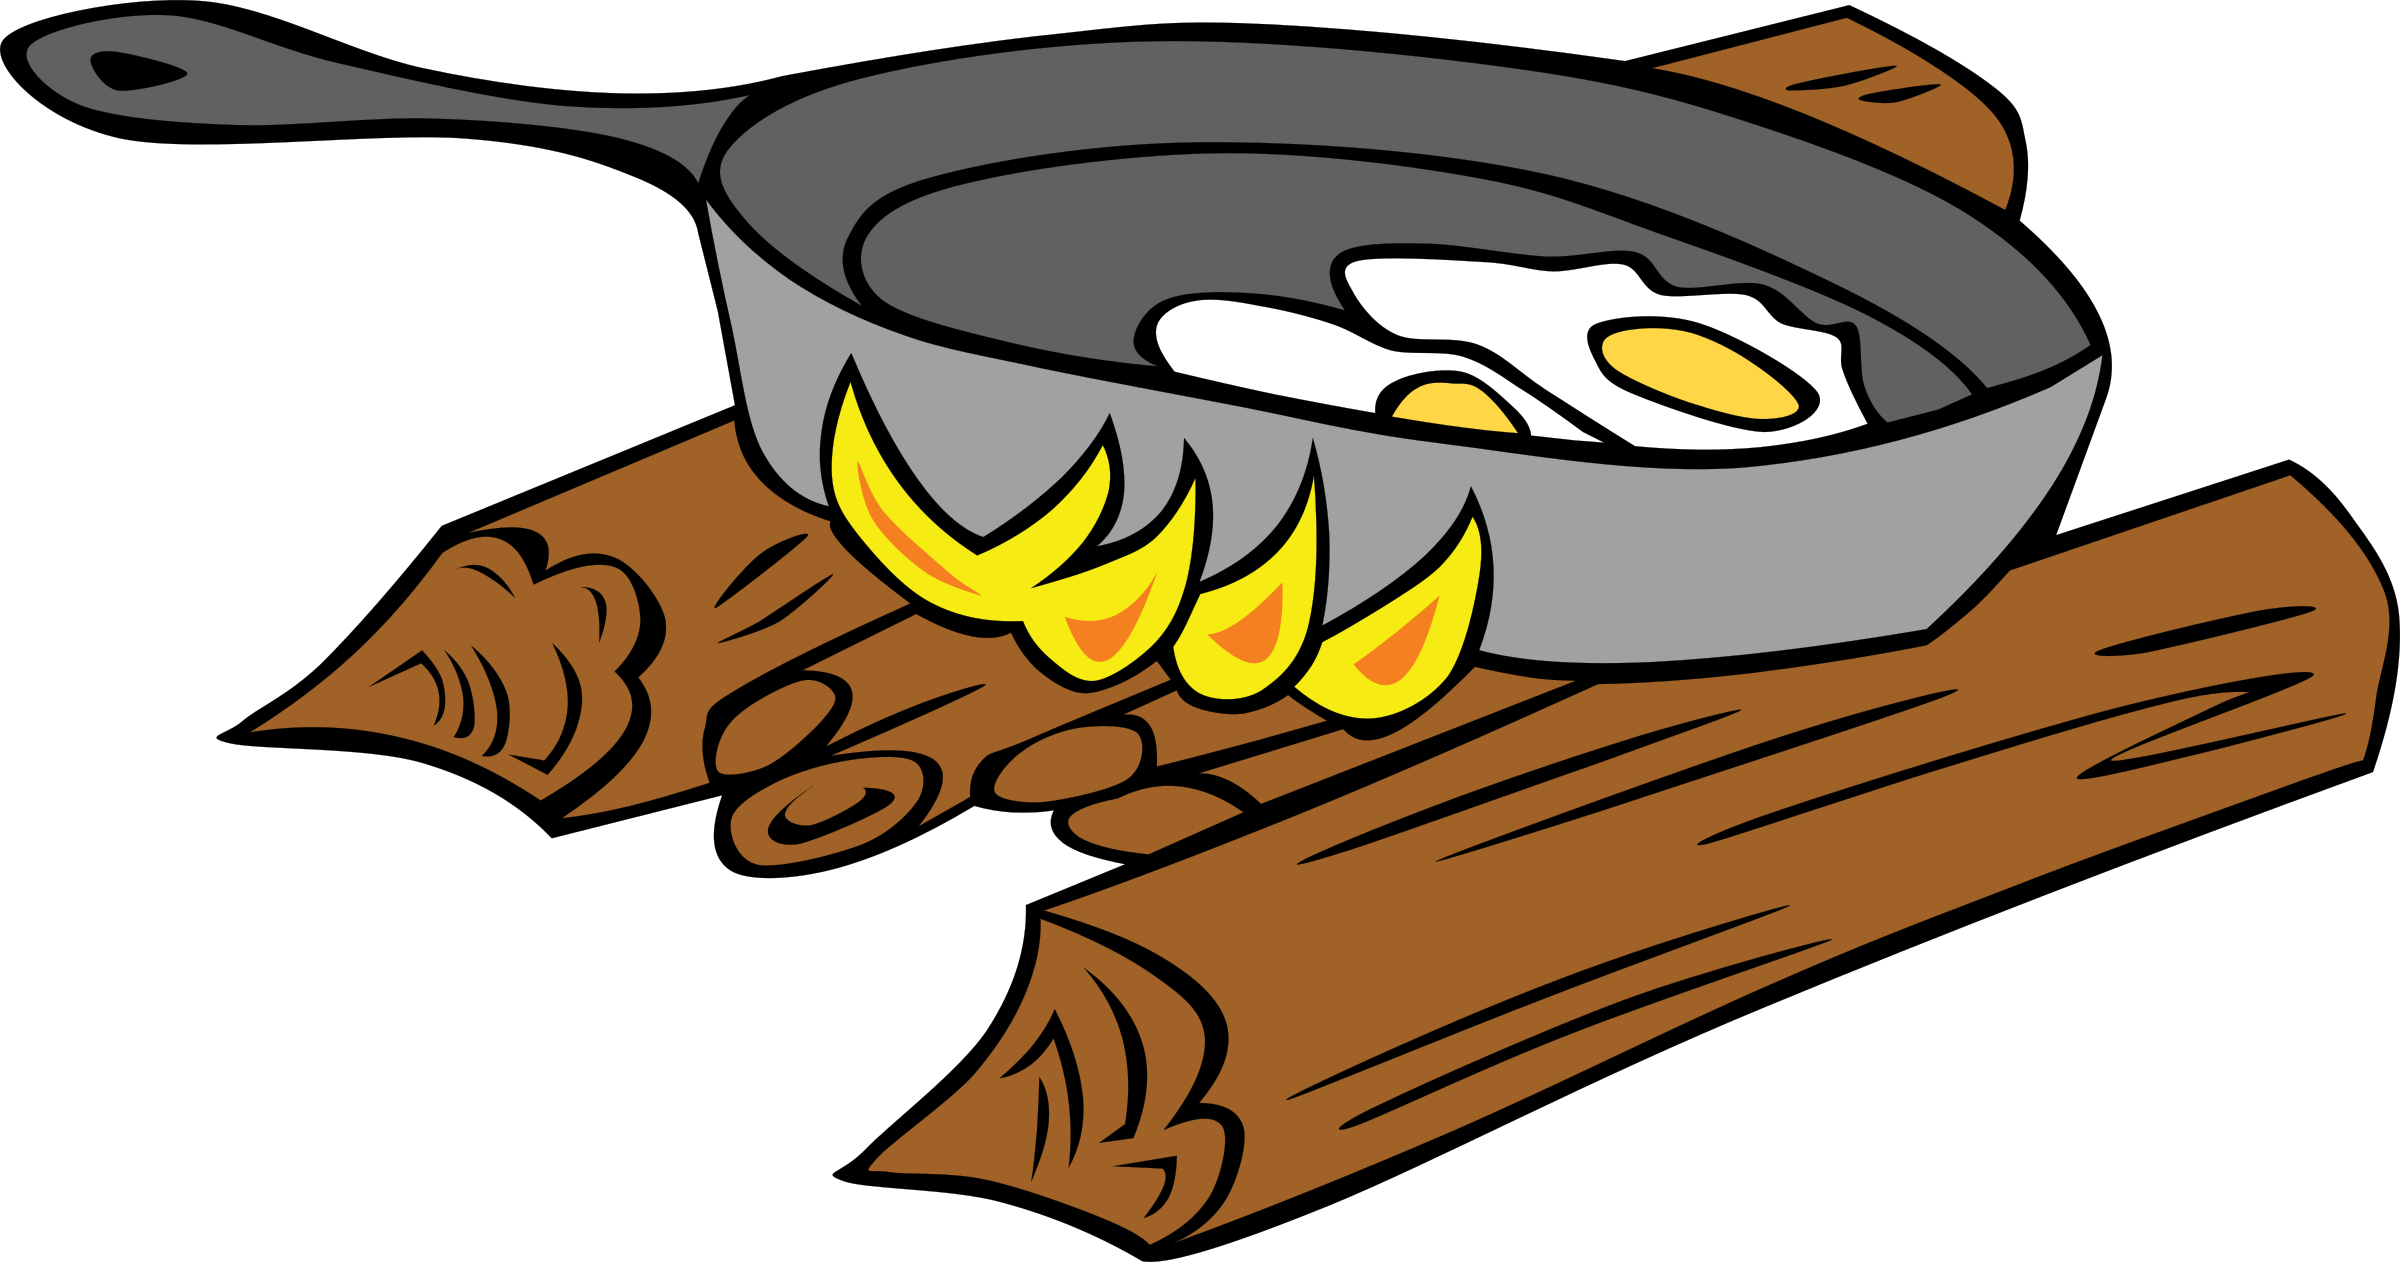 Clipart - Campfires and cooking cranes